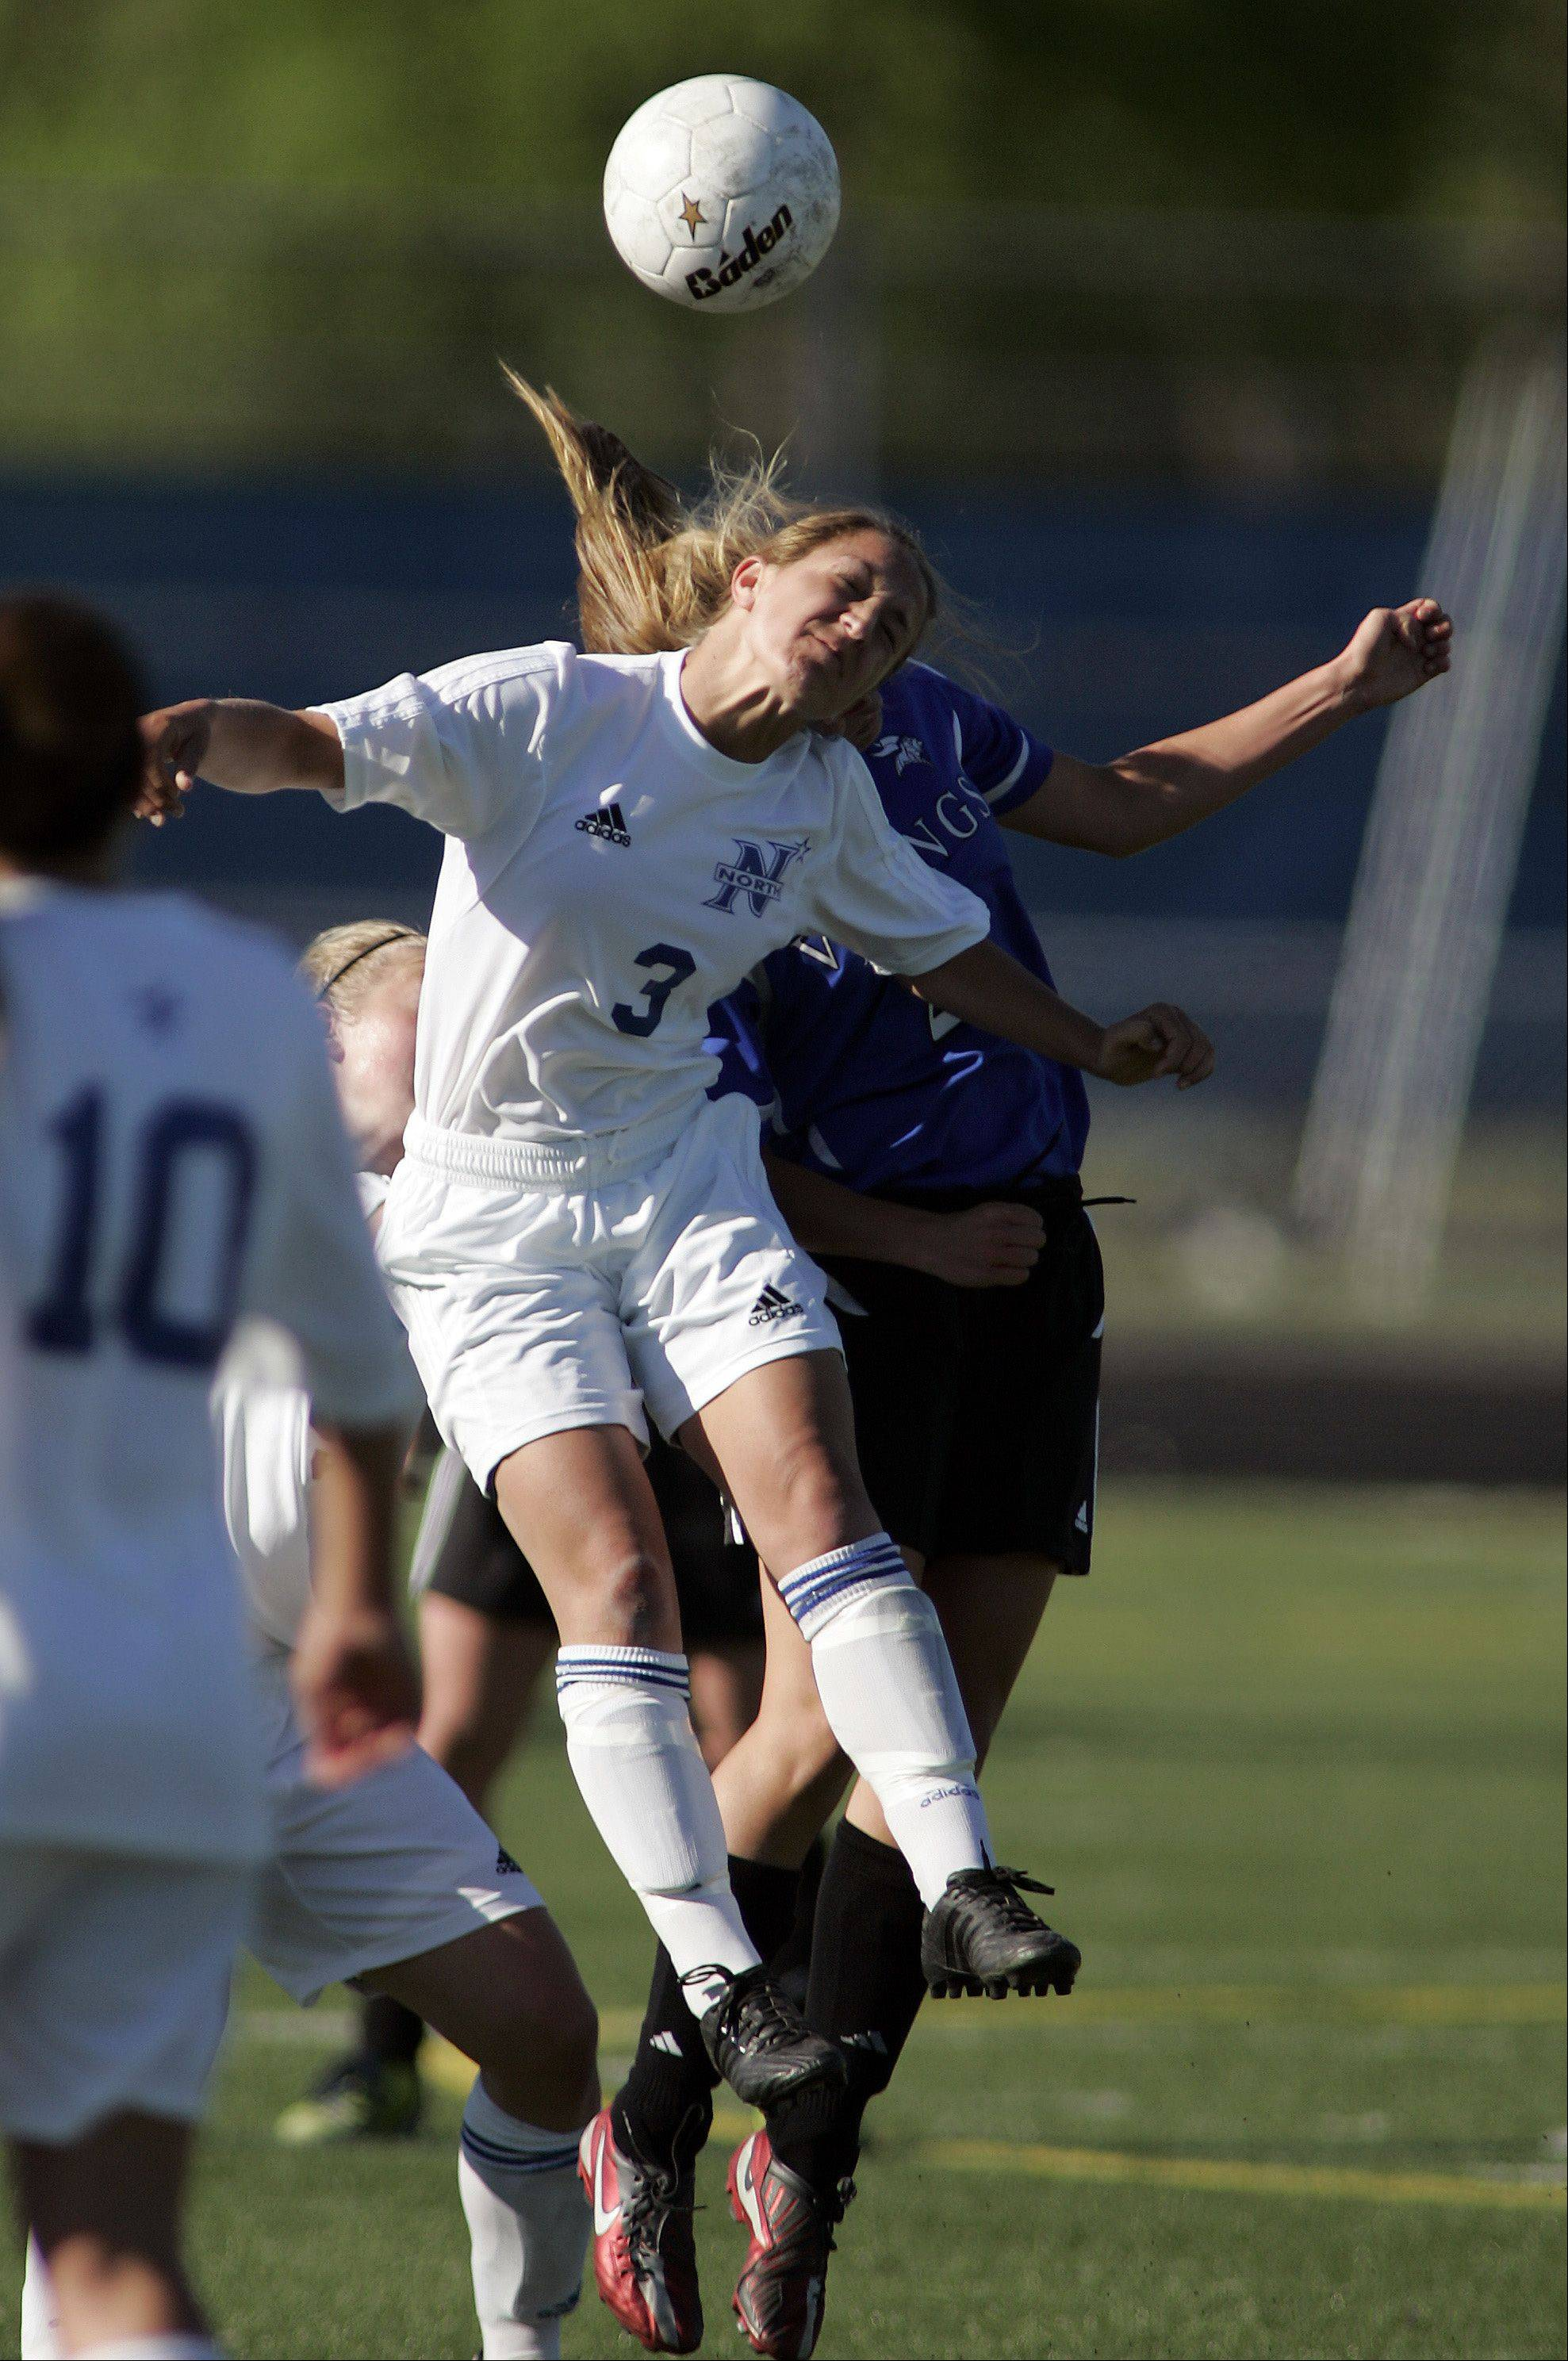 St. Charles North's Alex Gage (3) goes head to head with Geneva forward Mary Landry (21) during the IHSA Girl's 3A Sectional Soccer Tournament Friday at Hoffman Estates High School.